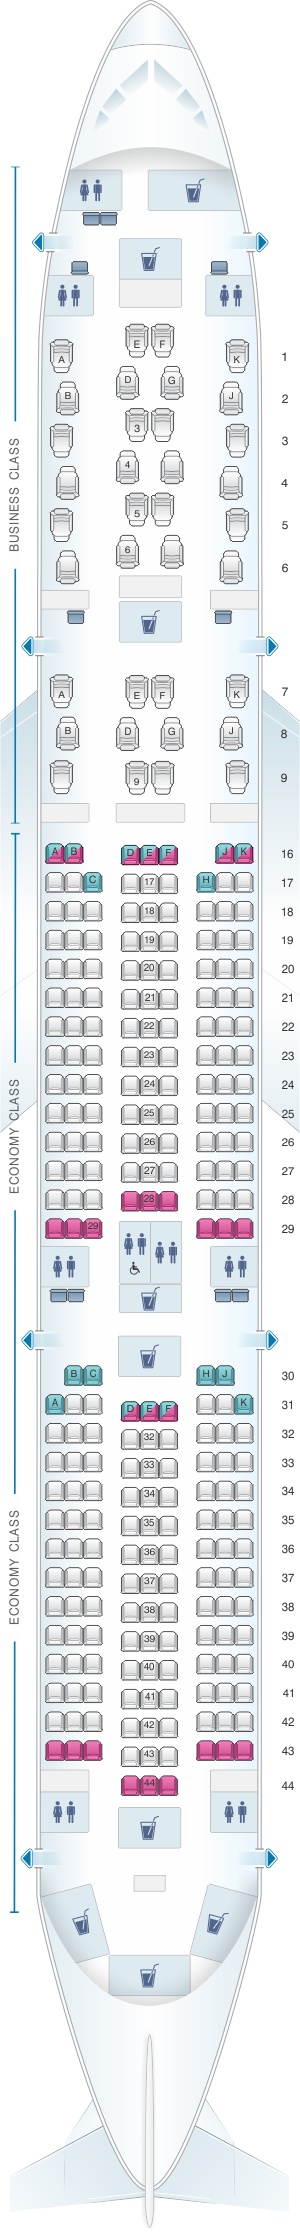 Seat map for Qatar Airways Airbus A350 900 Qsuite